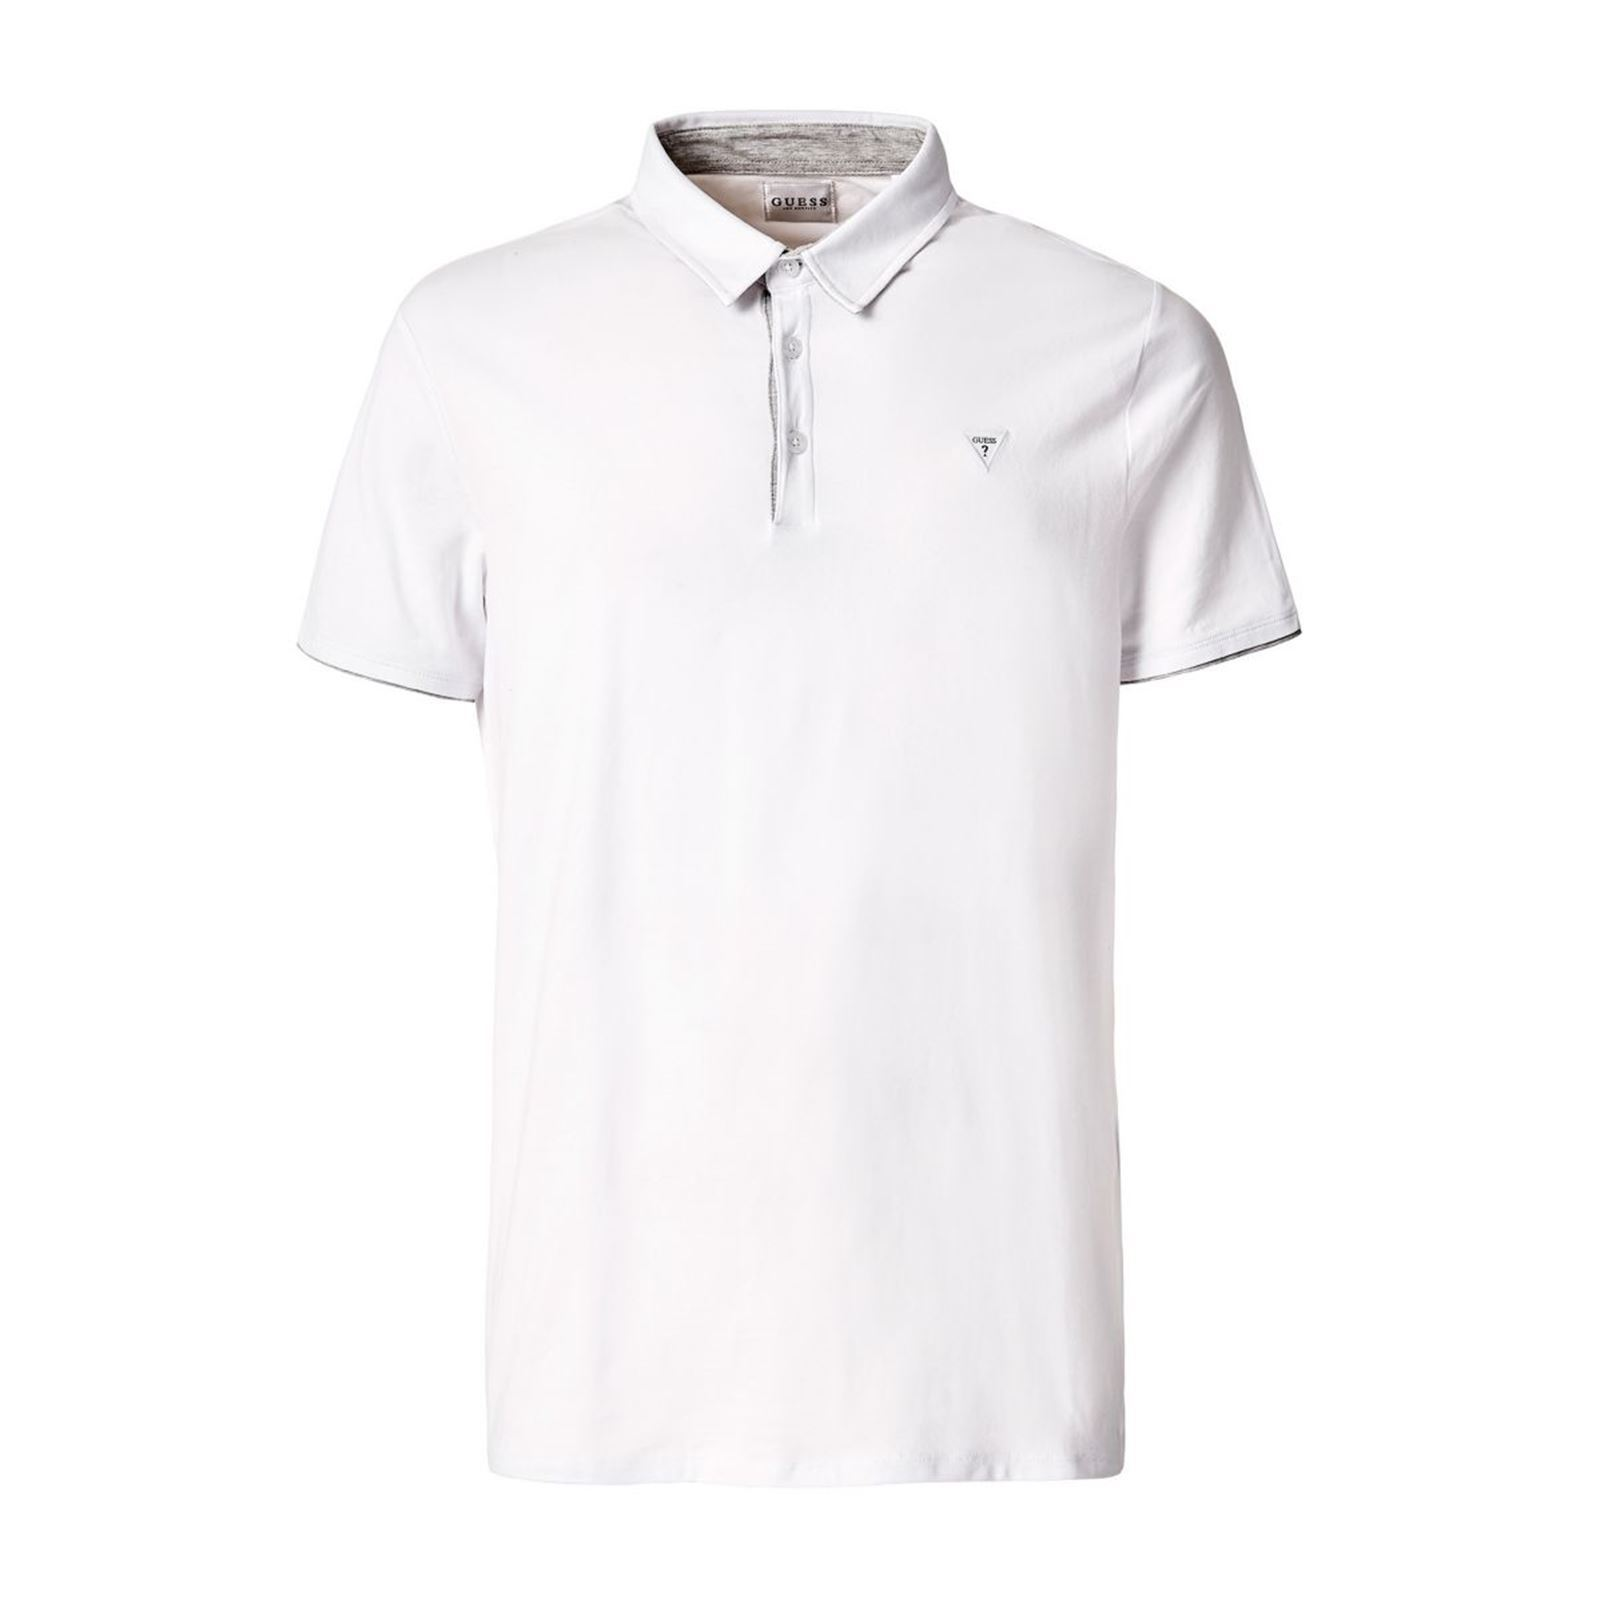 Guess Polo manches courtes - blanc